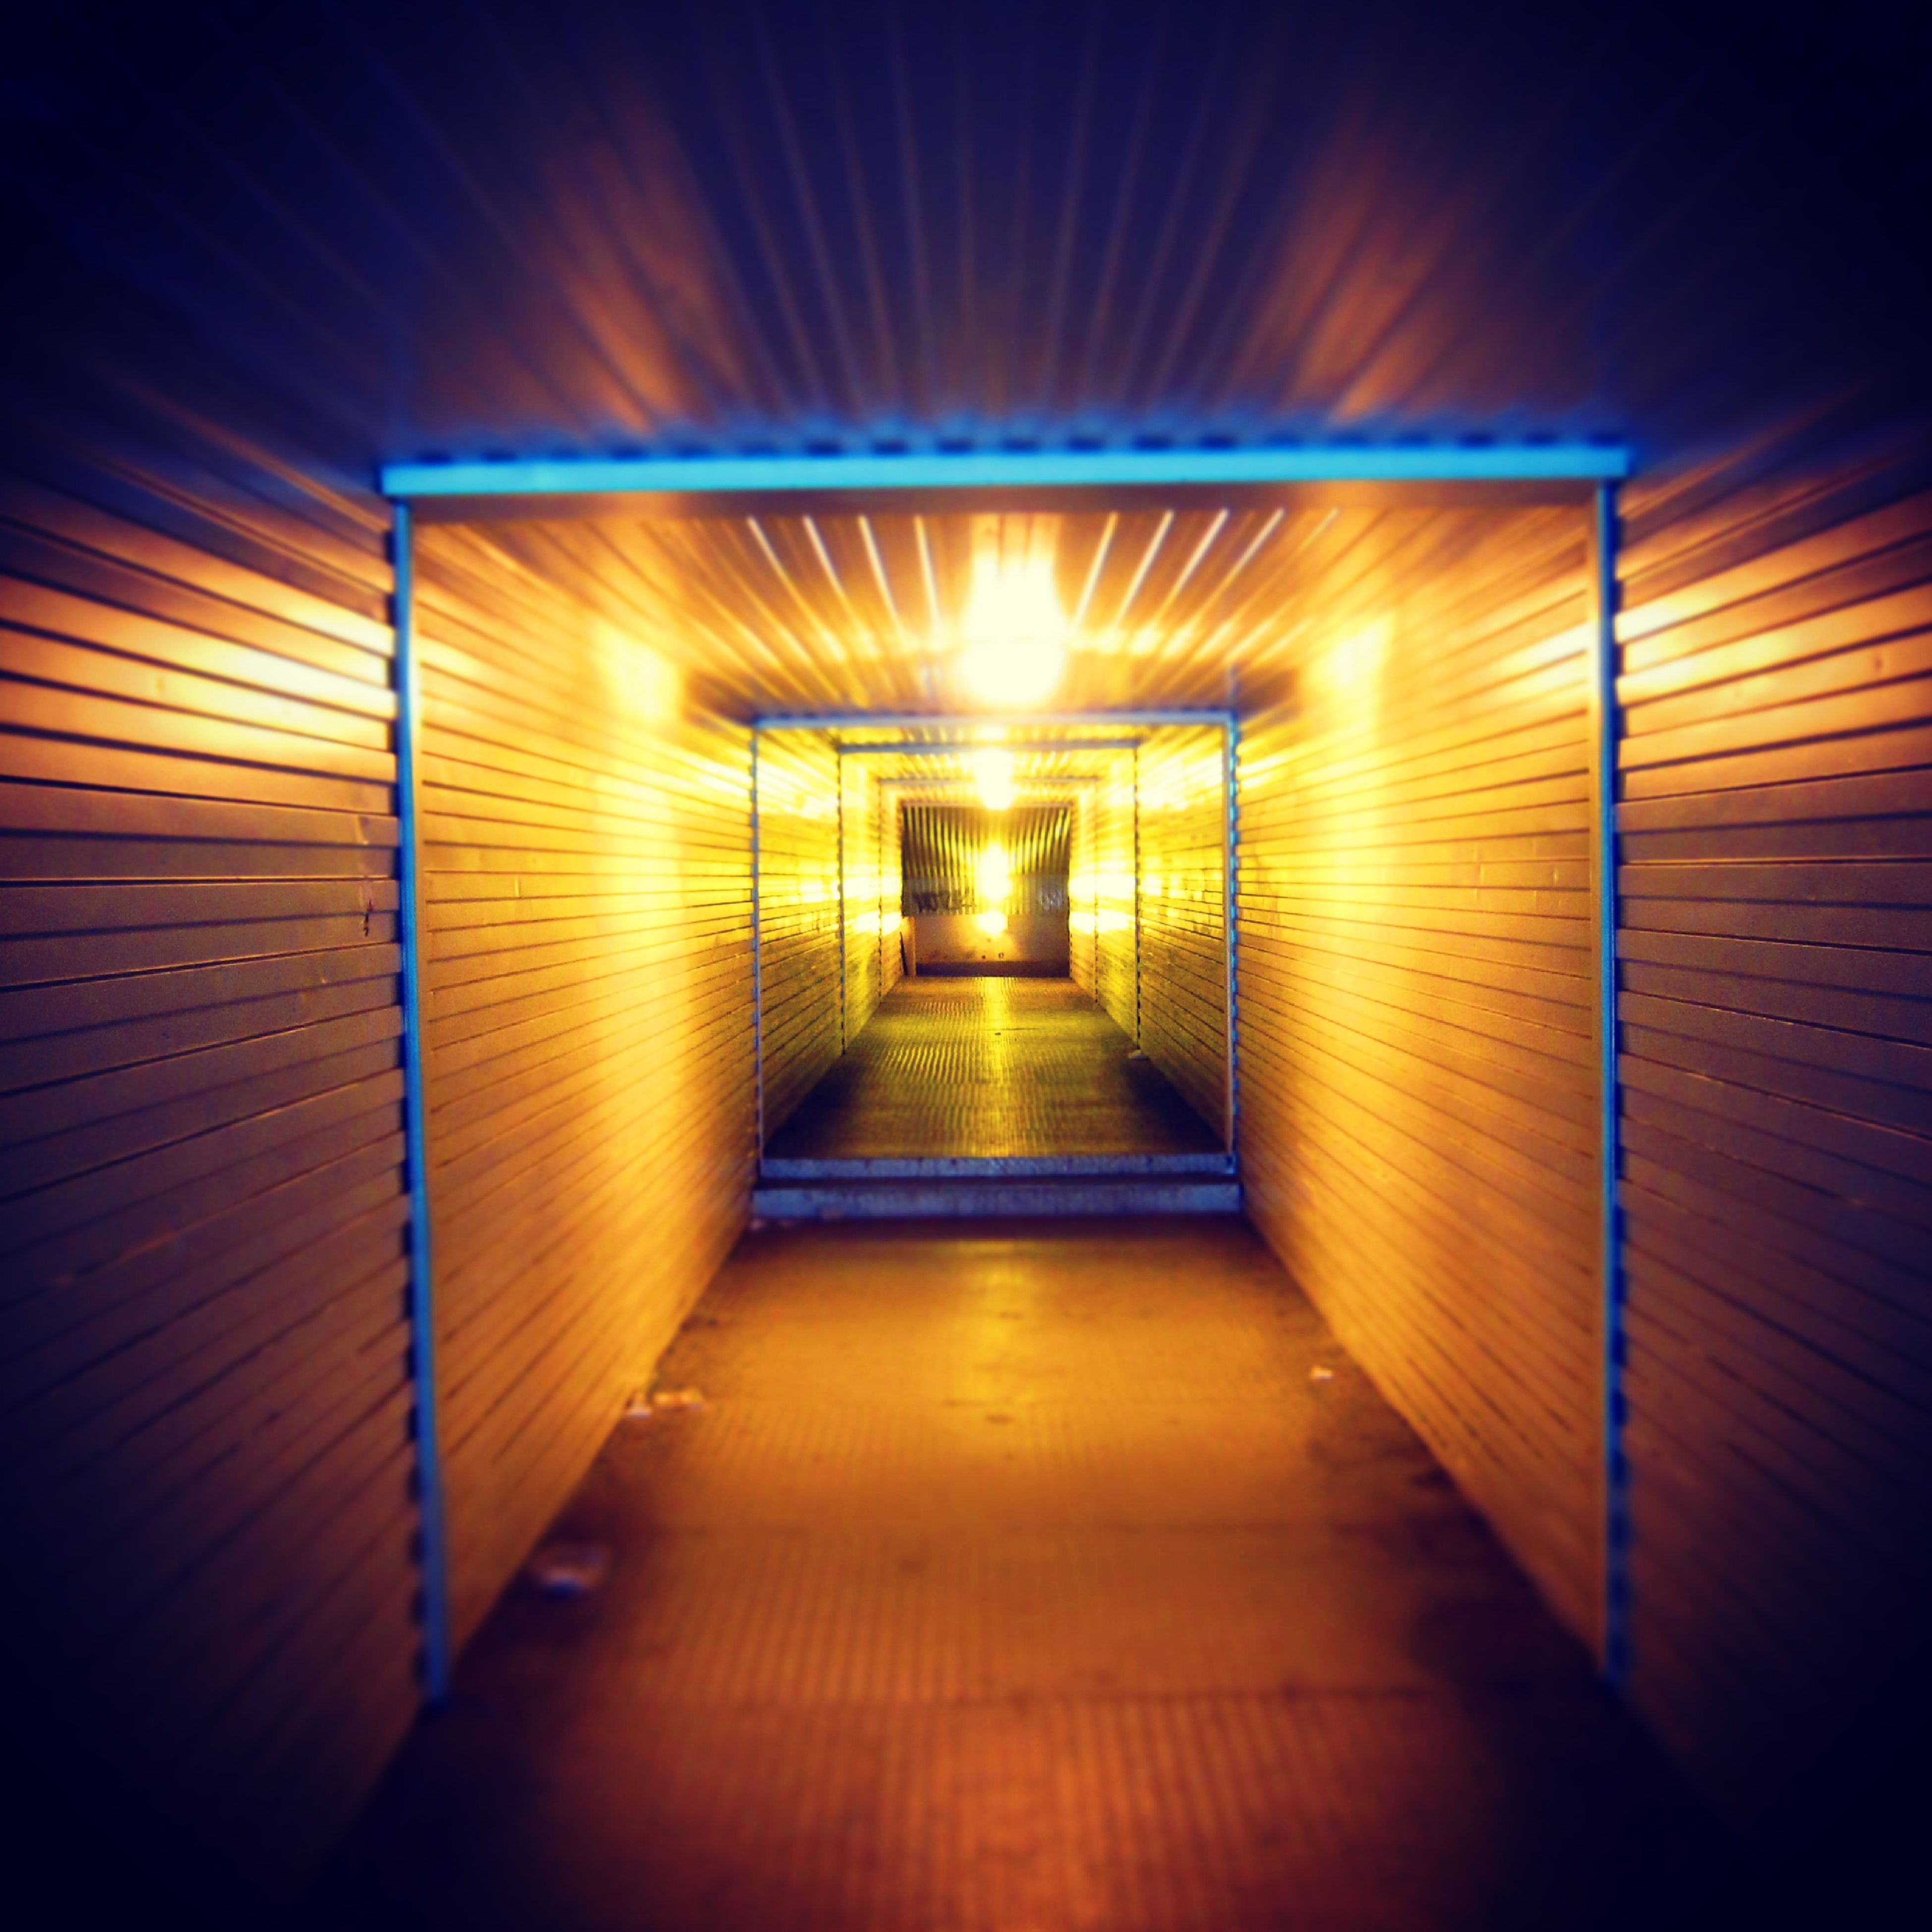 indoors, illuminated, the way forward, empty, lighting equipment, diminishing perspective, light - natural phenomenon, railing, tunnel, wood - material, absence, night, ceiling, vanishing point, steps, wall - building feature, no people, narrow, built structure, flooring